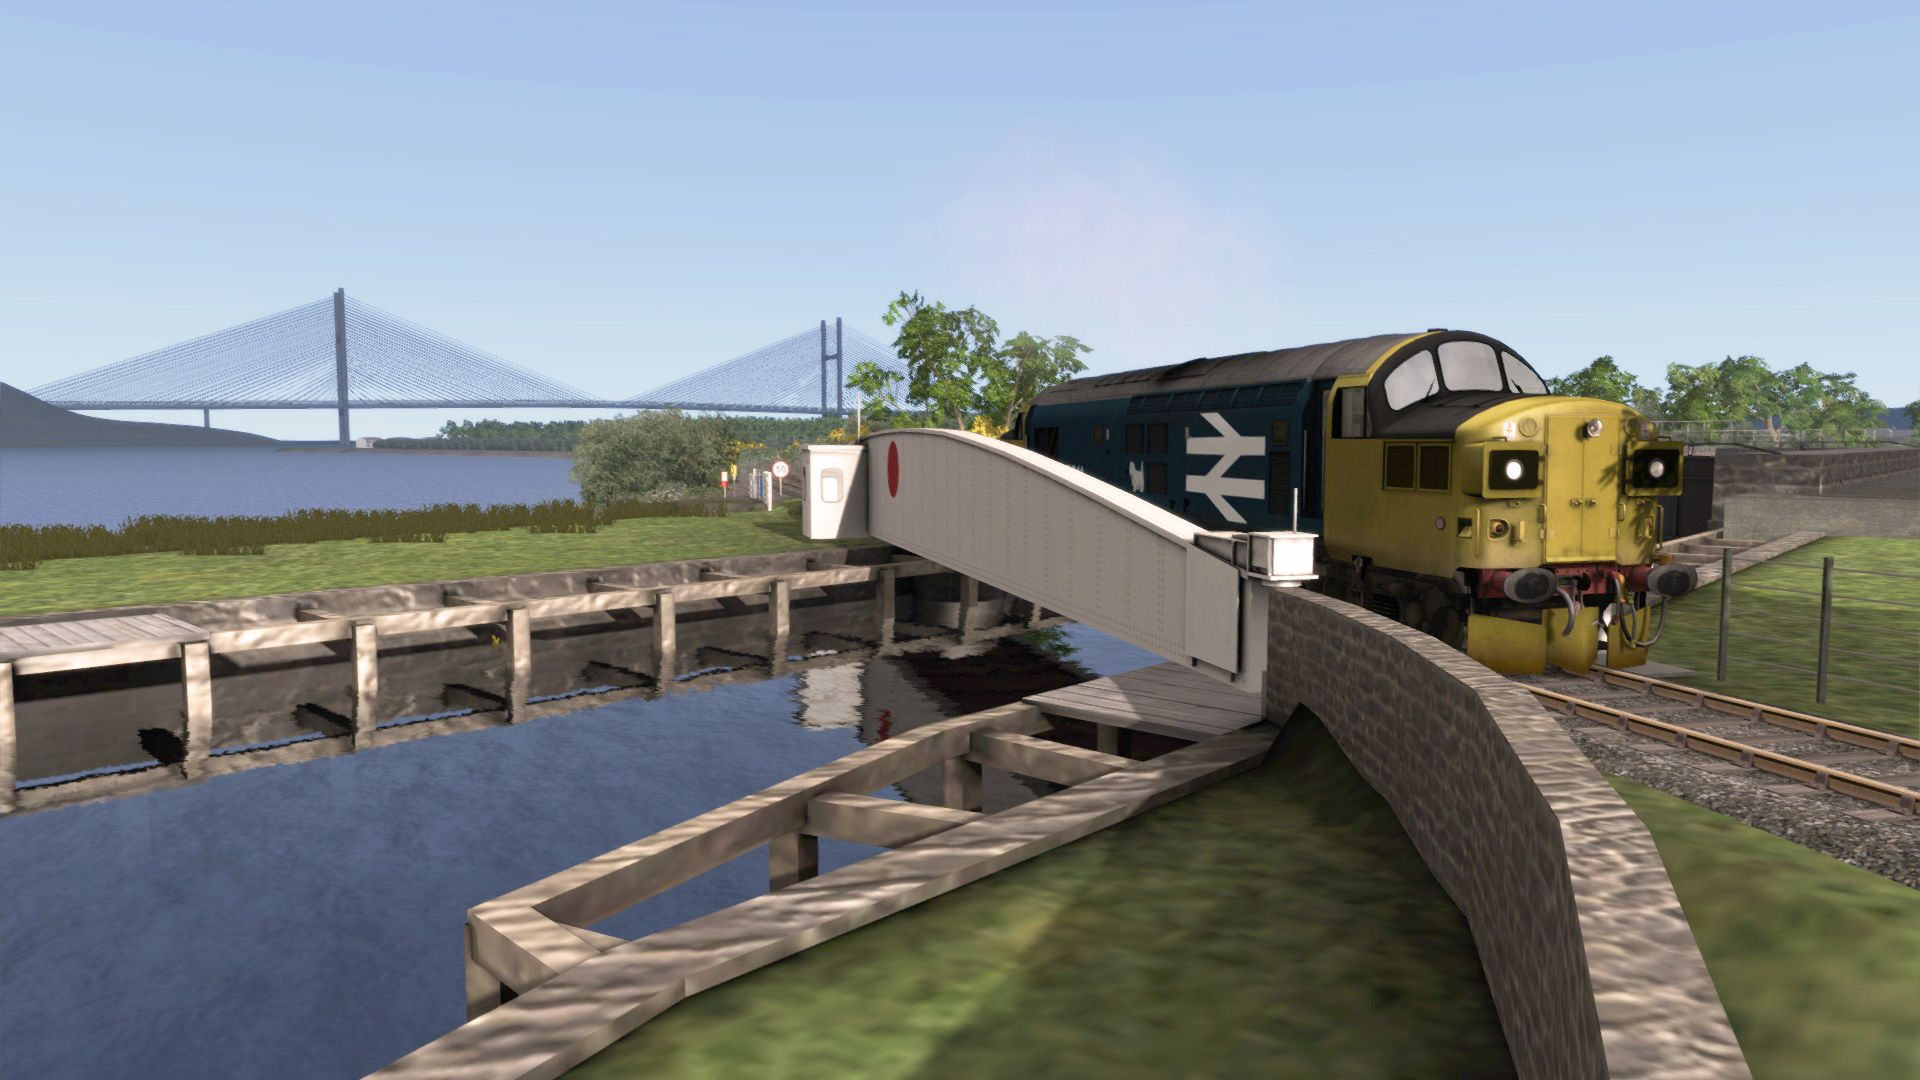 Train Simulator The Kyle Line: Inverness to Kyle of Lochalsh